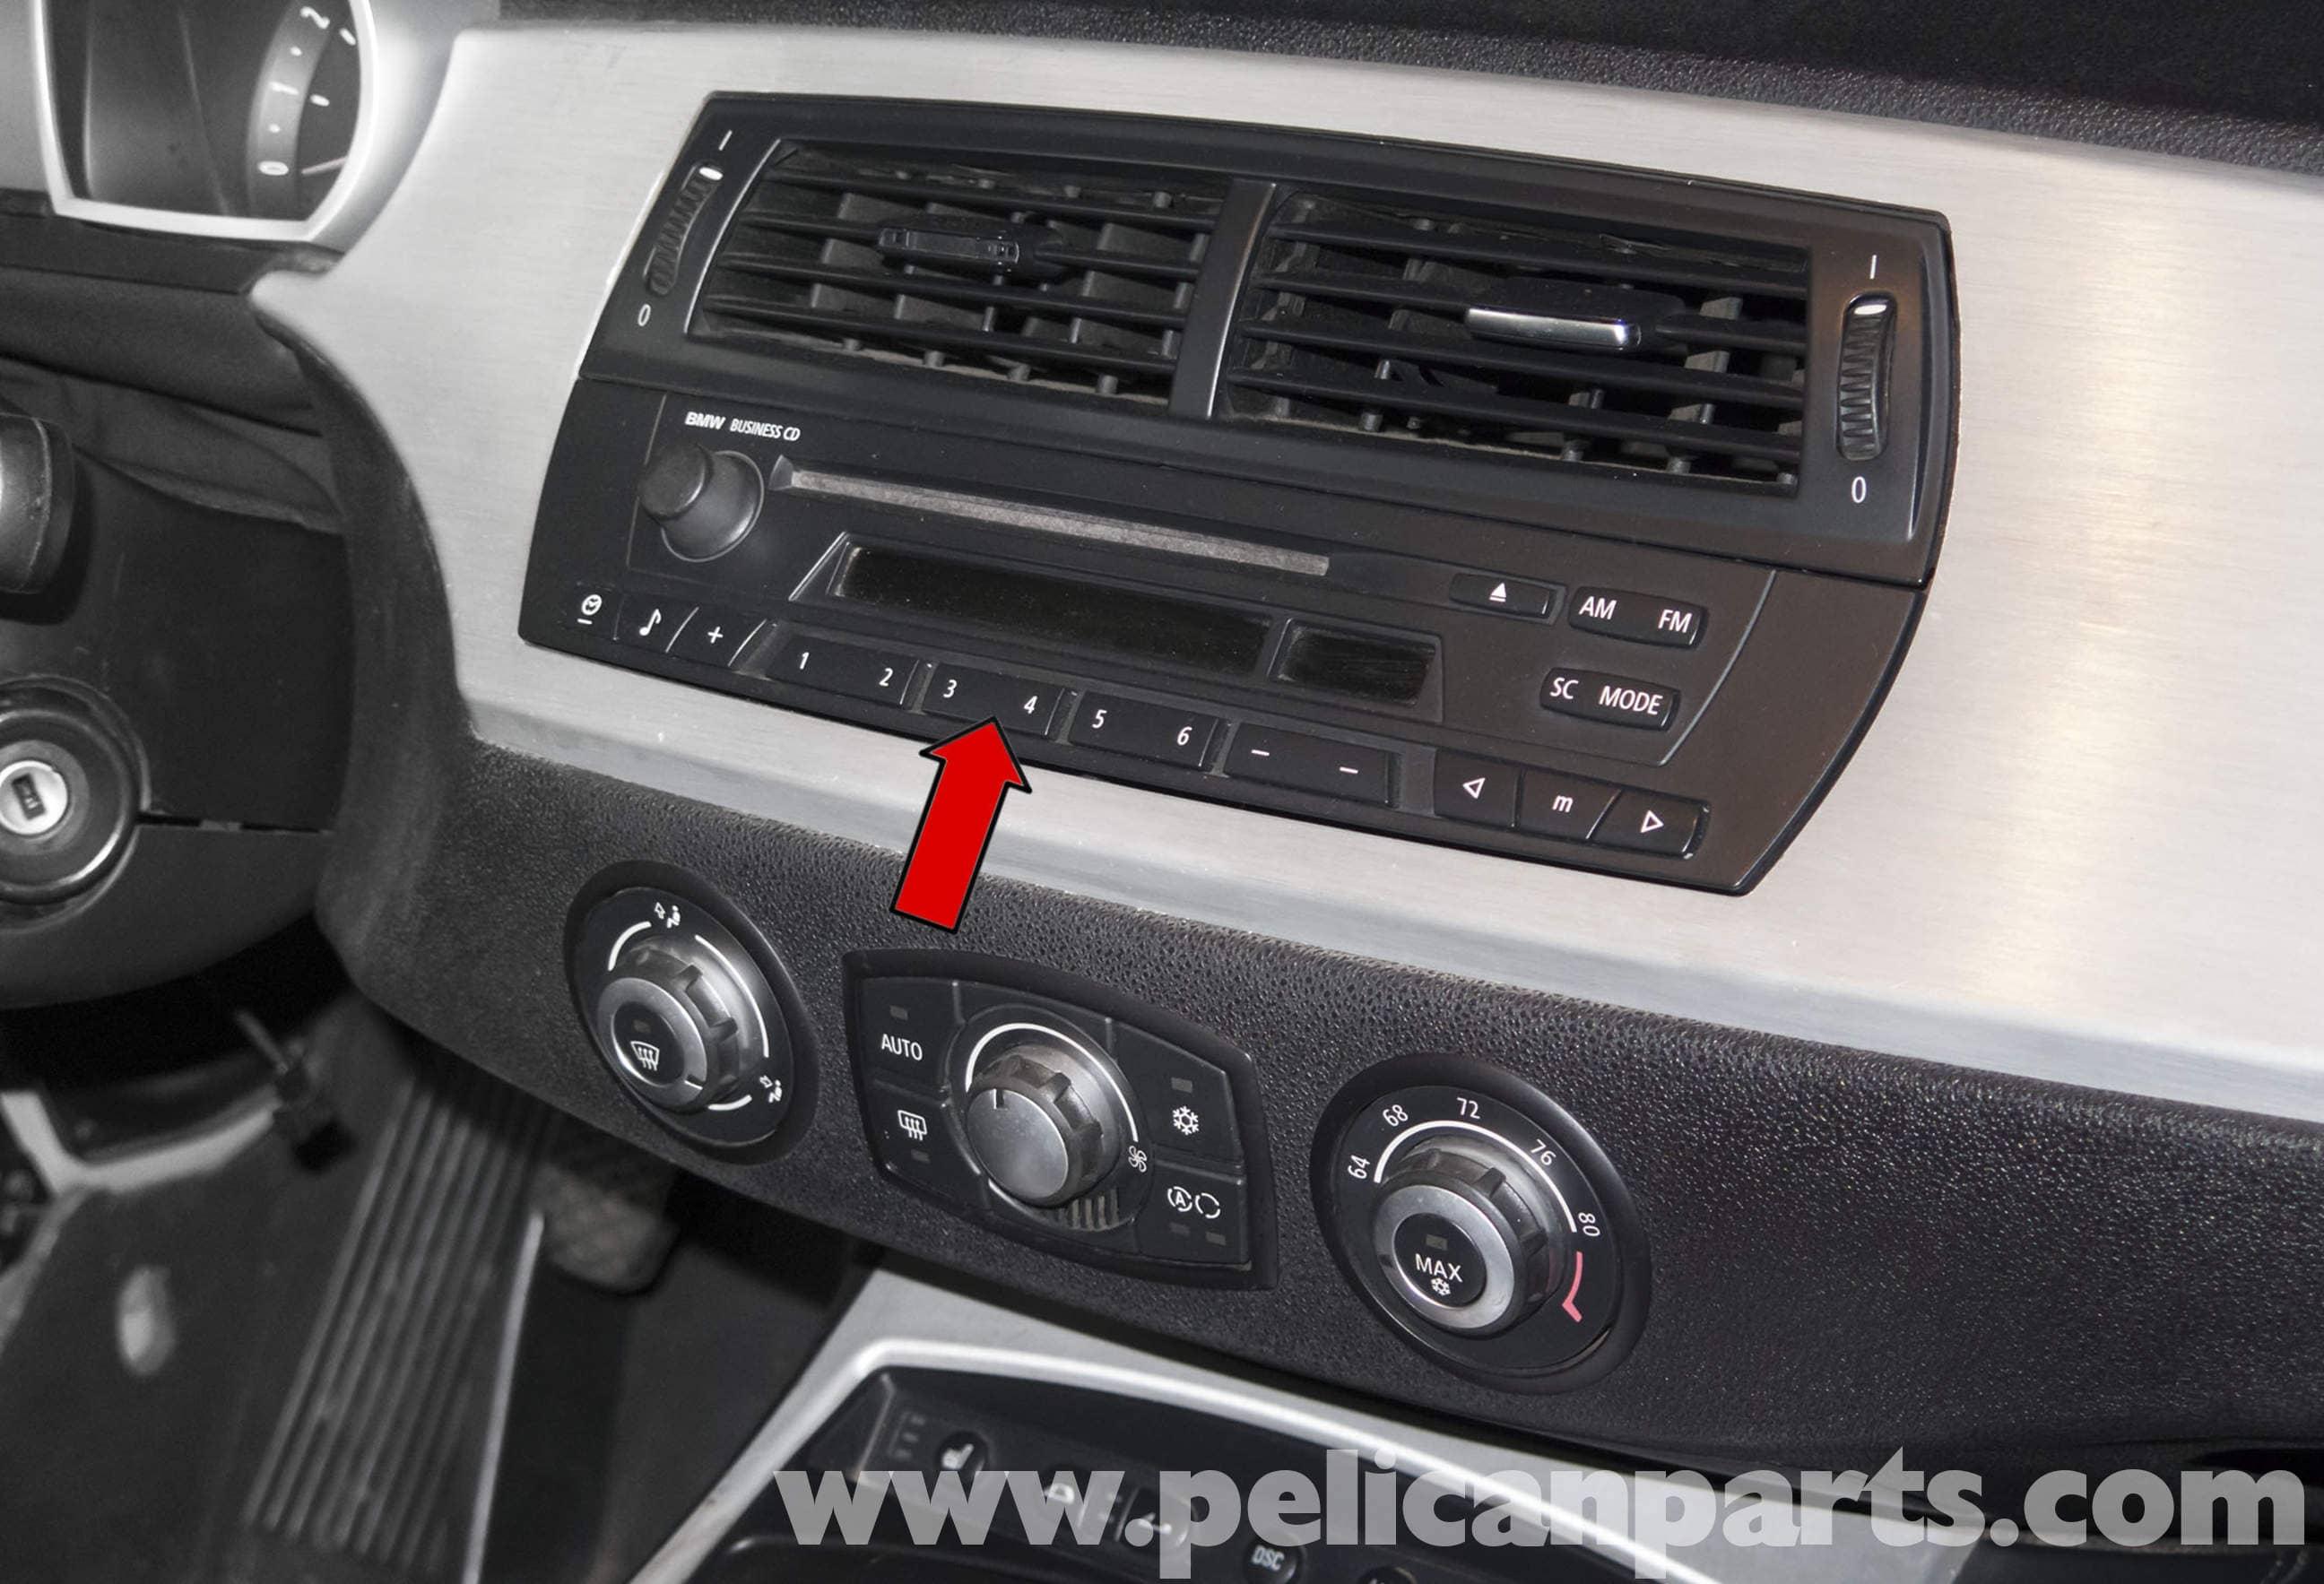 Bmw Z4 Radio Wiring | Wiring Diagram Radio Wiring Diagram Bmw Z on